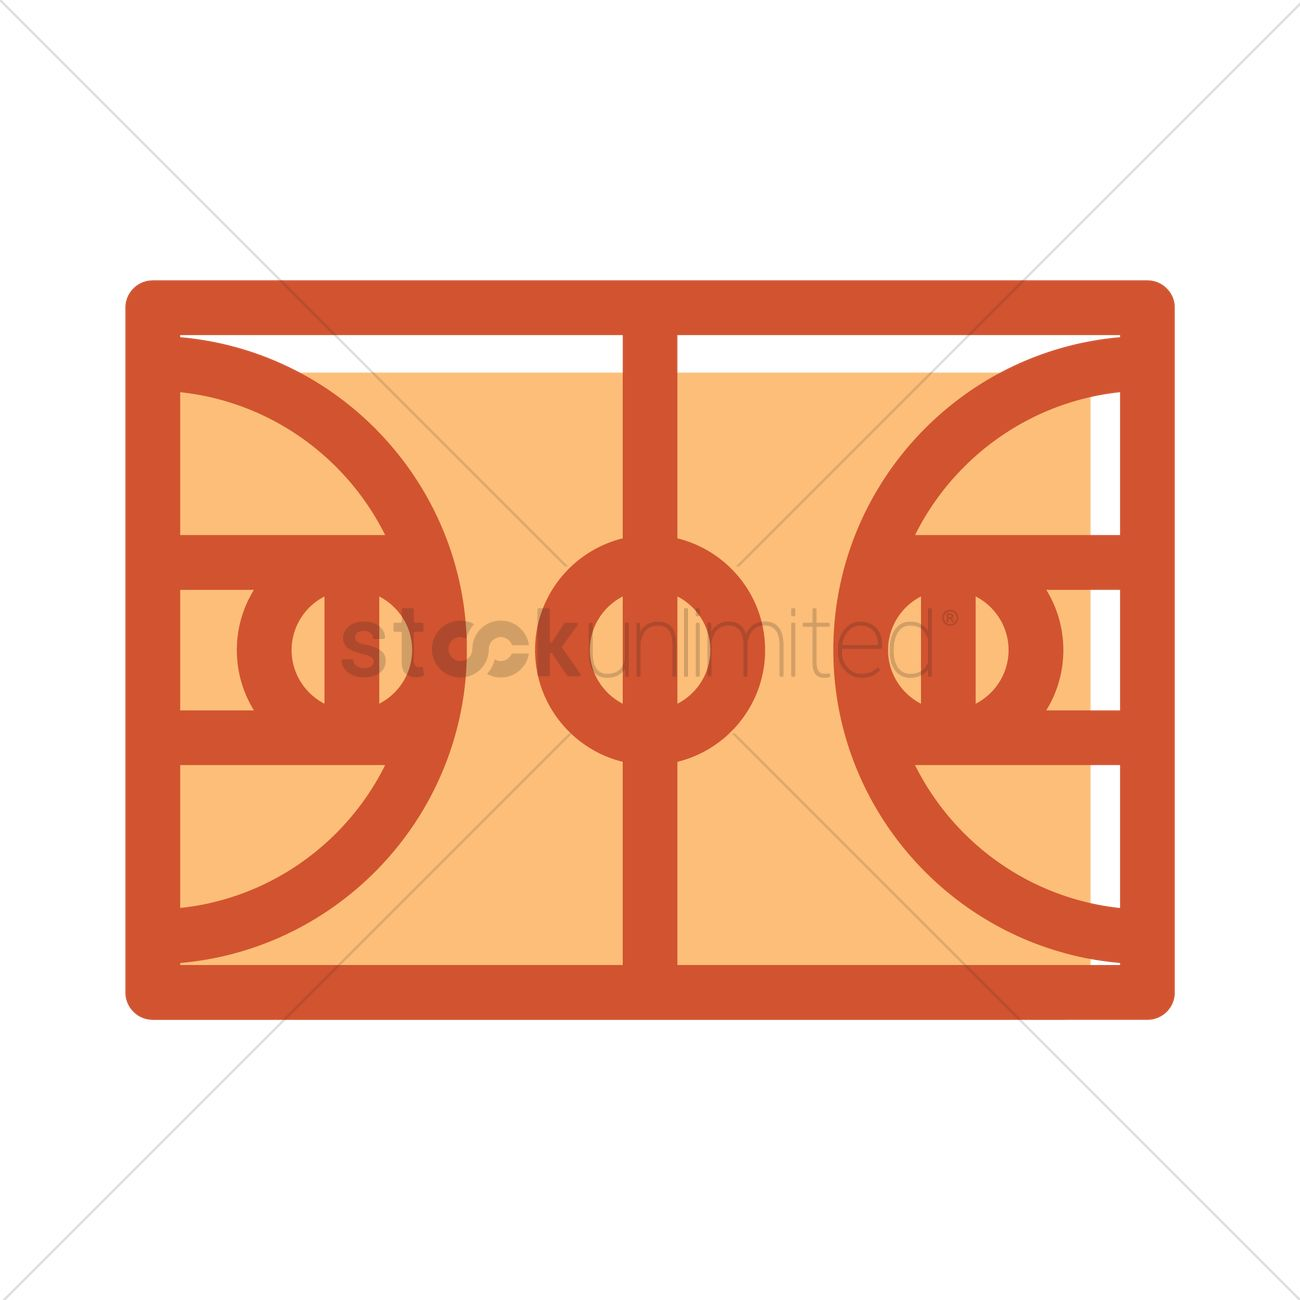 basketball court vector image 1992825 stockunlimited rh stockunlimited com basketball court vector free download basketball court layout vector